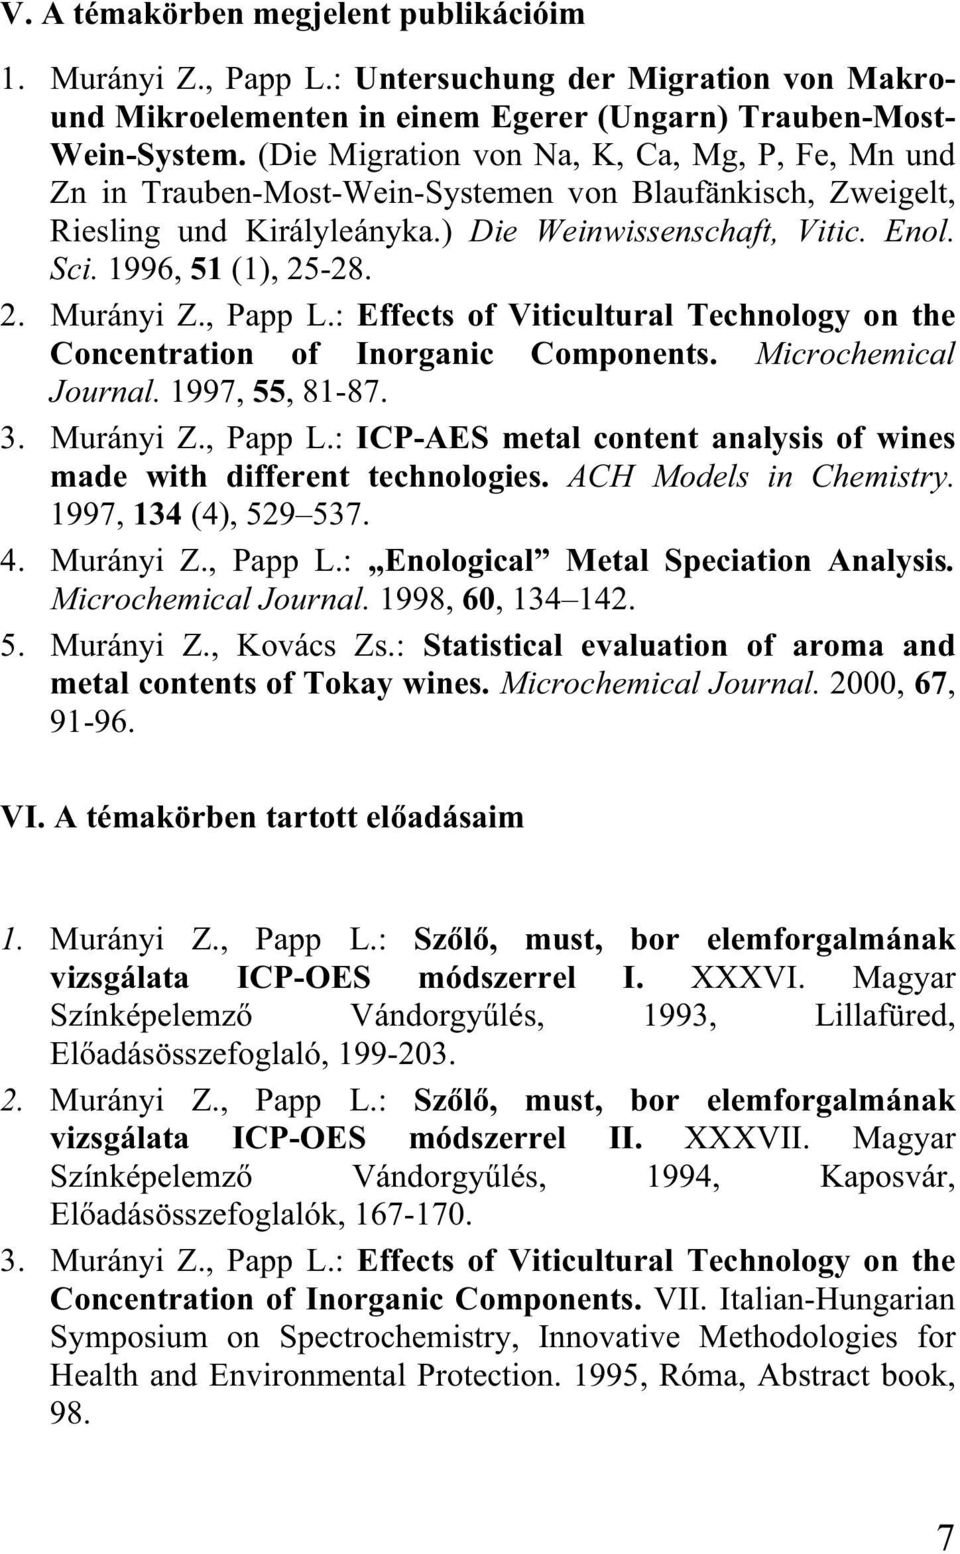 2. Murányi Z., Papp L.: Effects of Viticultural Technology on the Concentration of Inorganic Components. Microchemical Journal. 1997, 55, 81-87. 3. Murányi Z., Papp L.: ICP-AES metal content analysis of wines made with different technologies.